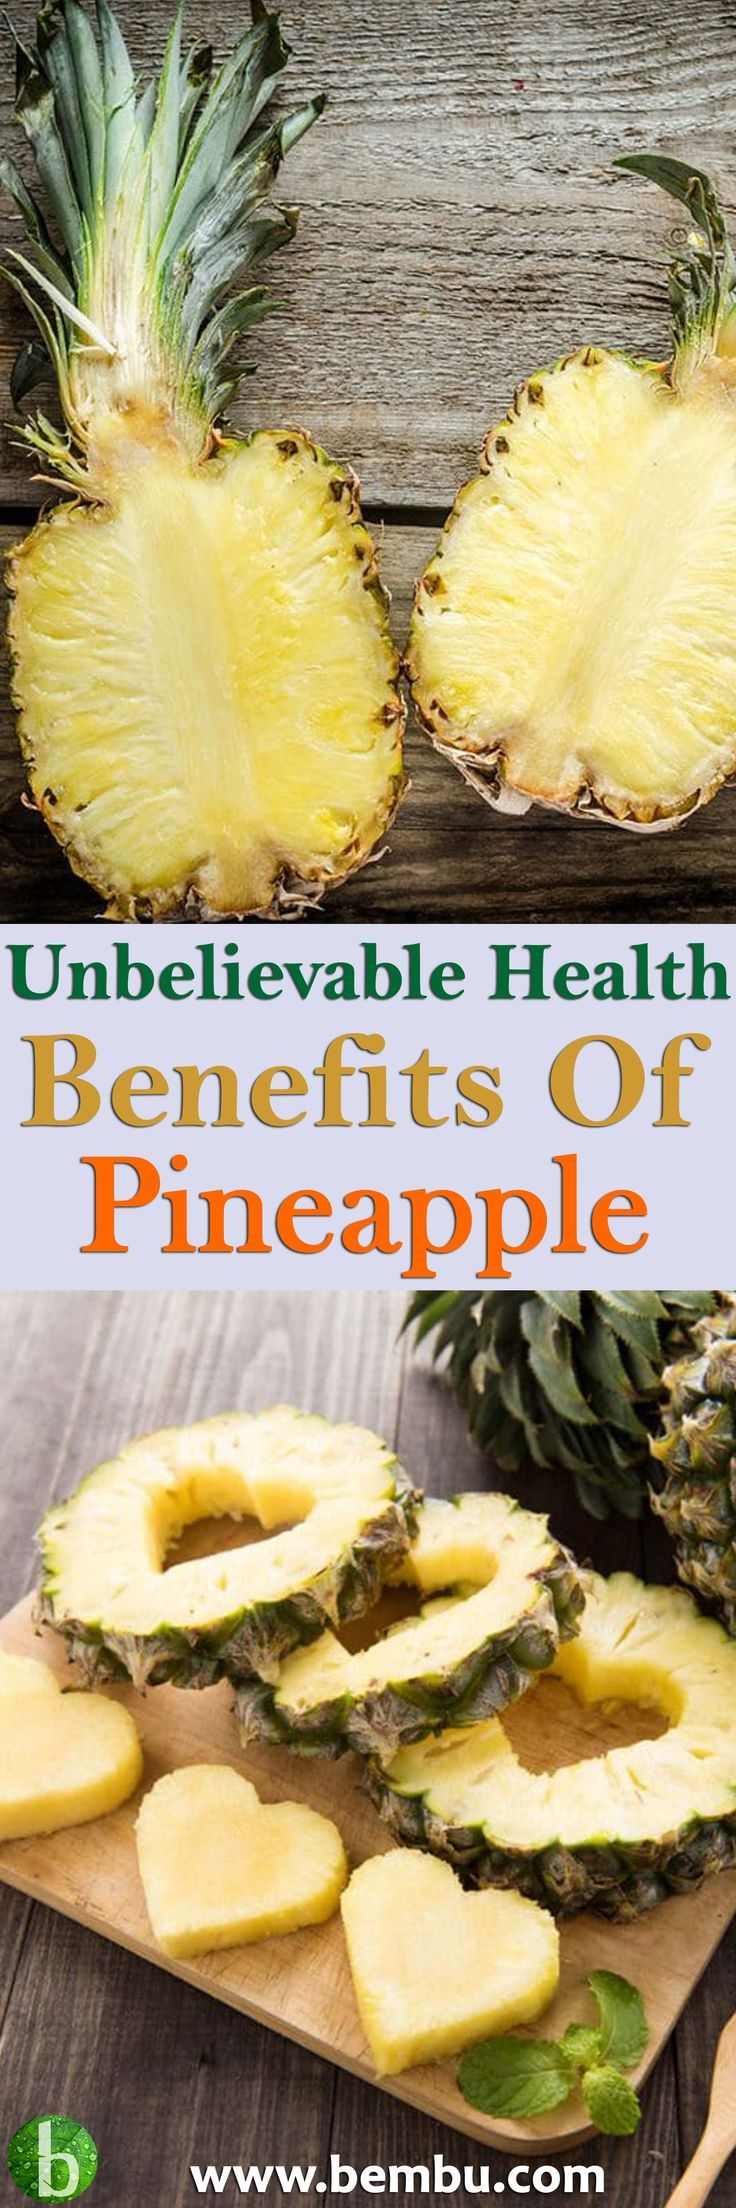 Discover the impressive, proven health benefits of the pineapple. And get a taste of the tropics with recipes that have passed the scrumptious test. Health Tips │ Health Ideas │Healthy Food │Health │Food │Drinks │Healthy Oil │Healing │Natural Remedies #Health #Ideas #Tips #Healthyfood #Food #Vitamin #Healing #Drinks #Remedies #Healthyoil